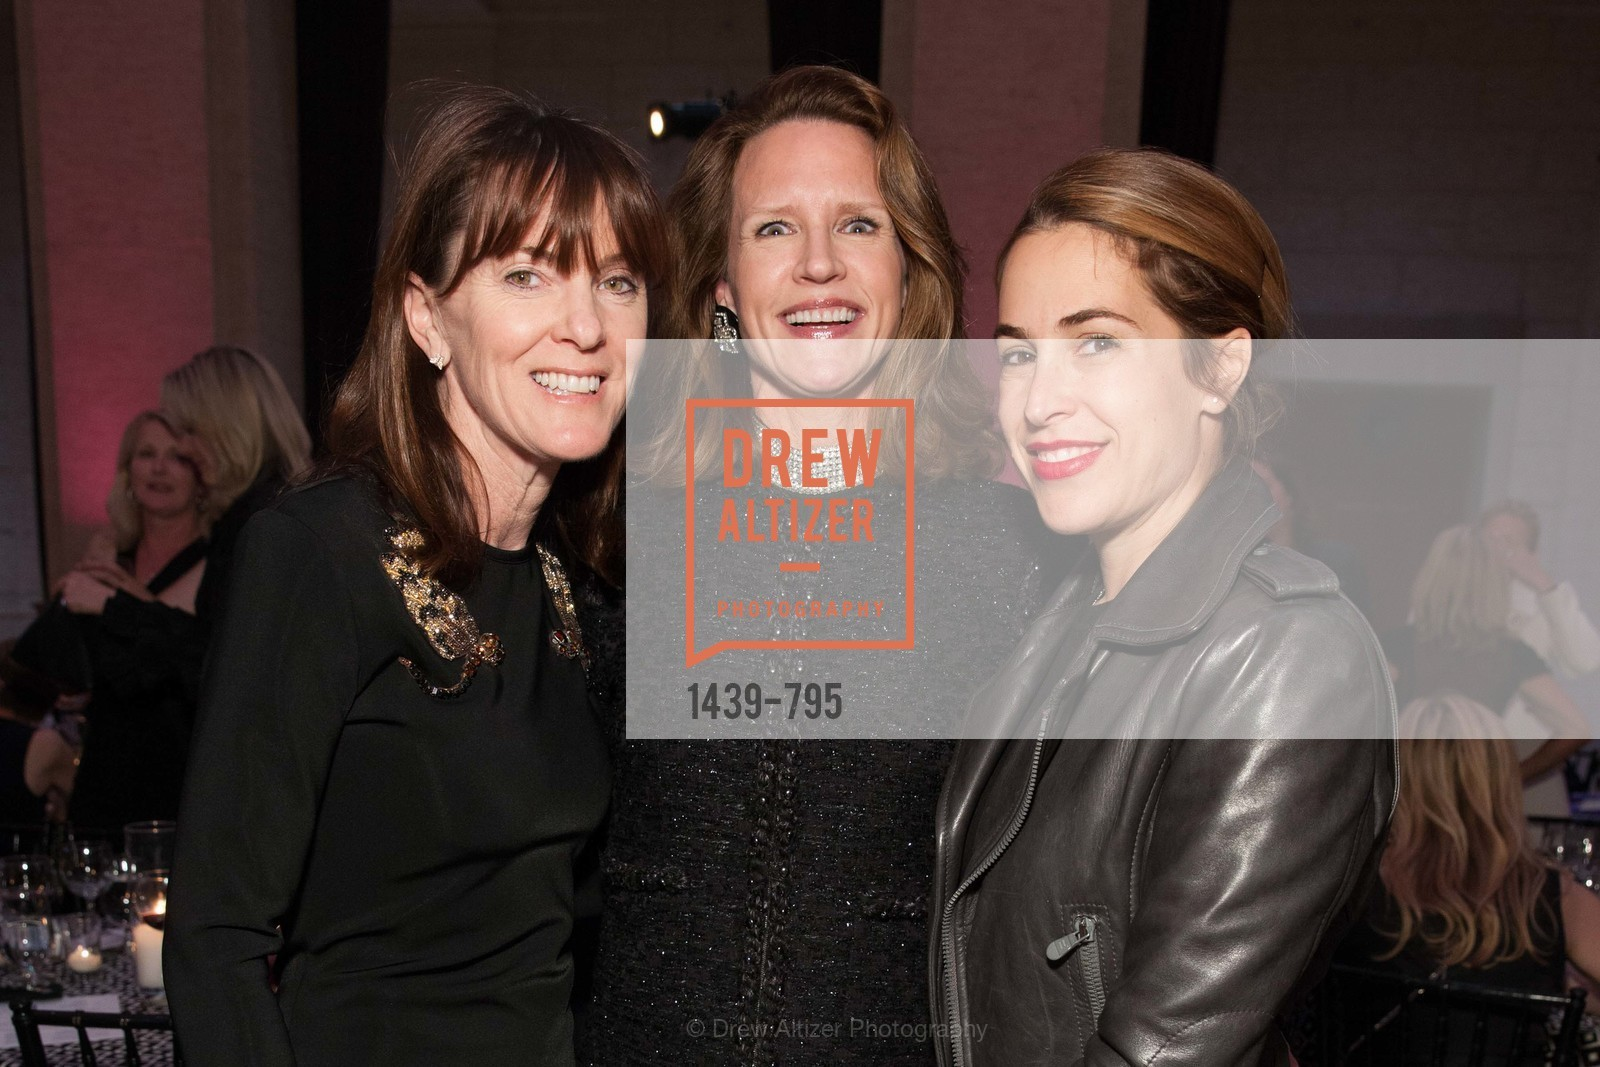 Allison Speer, Barbara Vaughn Hoimes, Alison Pincus, COMPASS FAMILY SERVICES Annual Spring Benefit:  Every Family Needs A Home, US, April 23rd, 2015,Drew Altizer, Drew Altizer Photography, full-service agency, private events, San Francisco photographer, photographer california